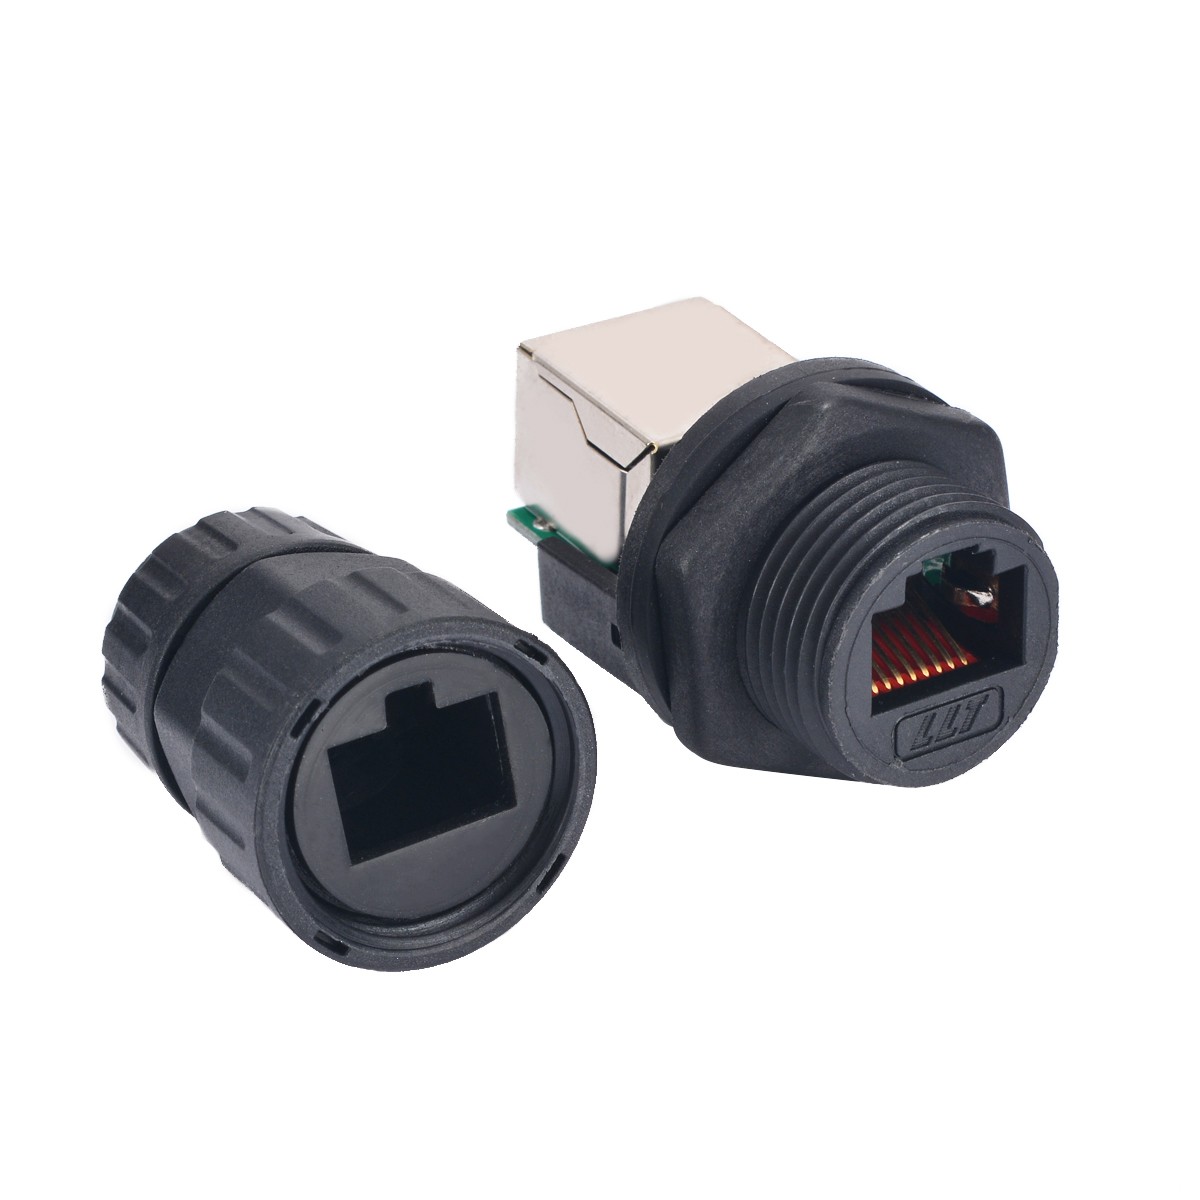 1x RJ45 Interface Connector IP68 Network Outdoor AP Waterproof Connector Adapter Durable 10mm Hole 8 Core in Connectors from Lights Lighting